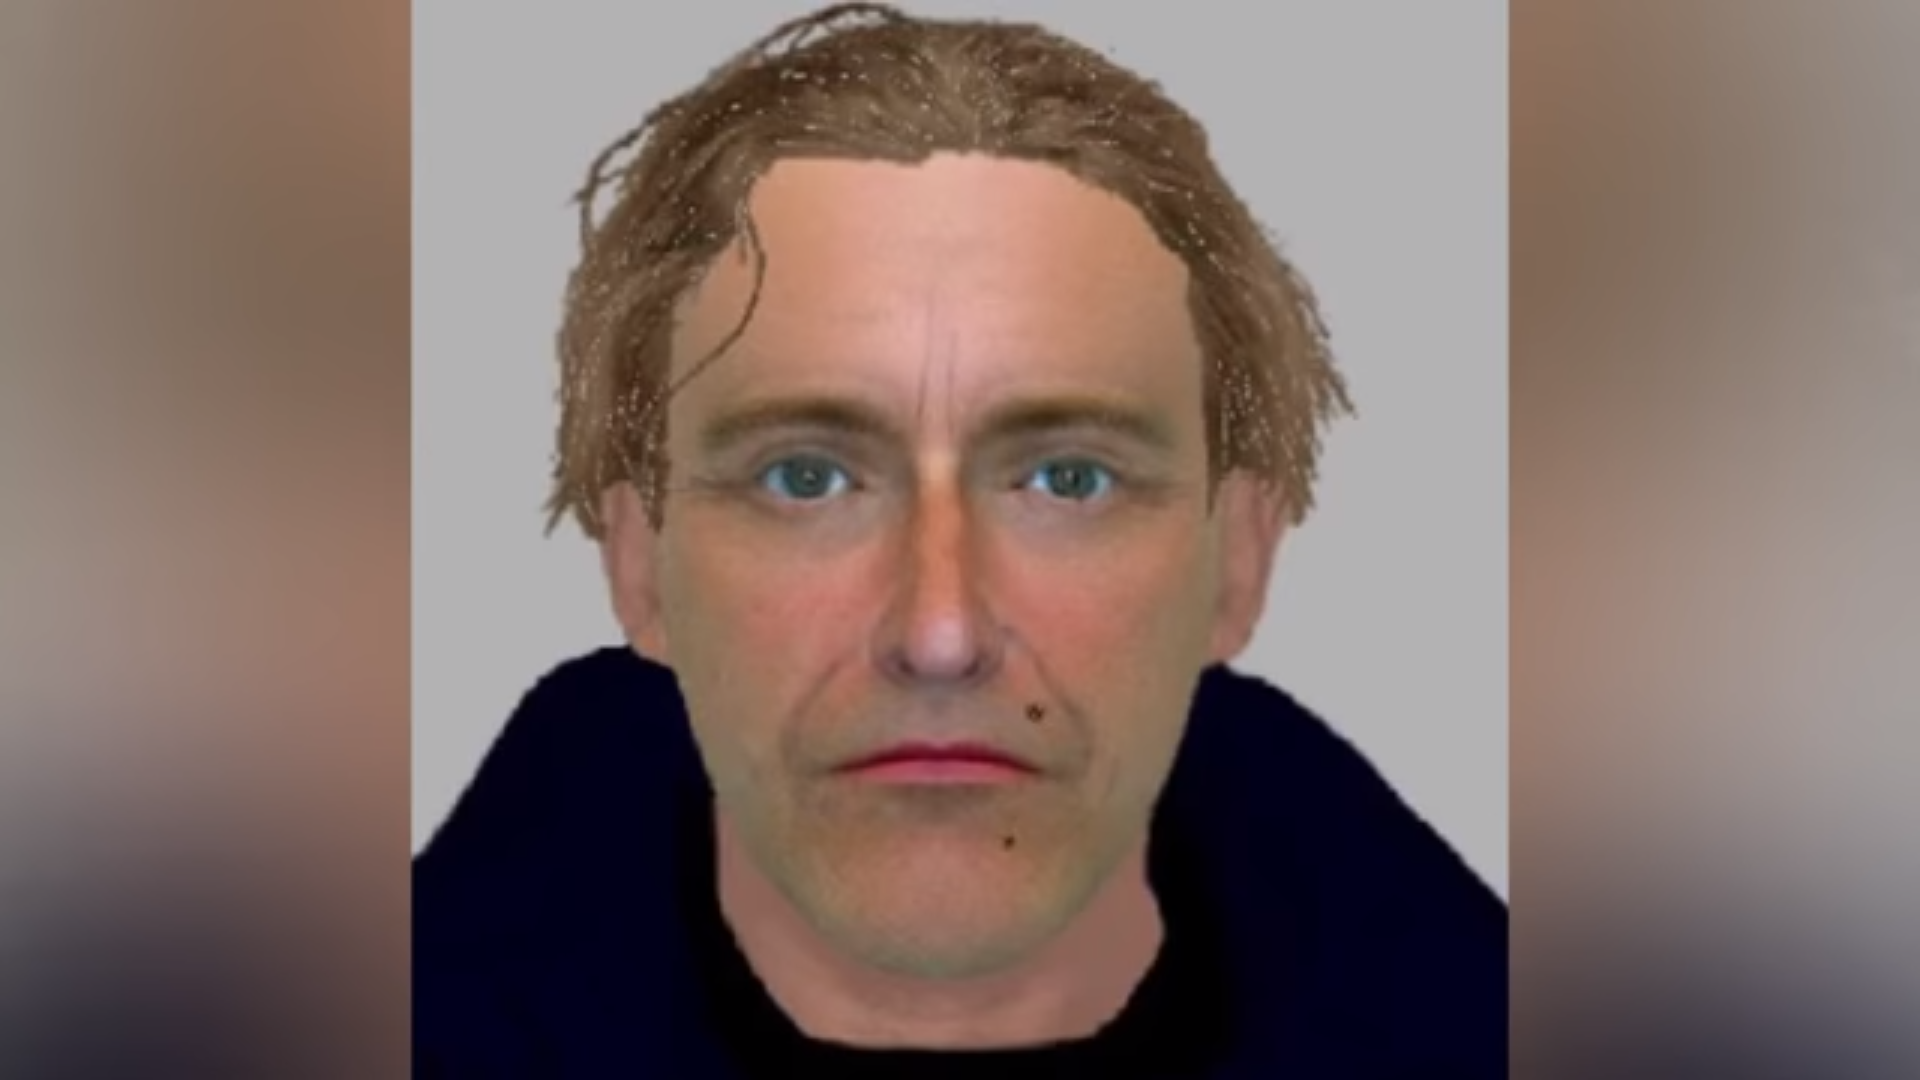 WARNING GRAPHIC DETAILS: Essex Police launch national appeal for man who assaulted girl